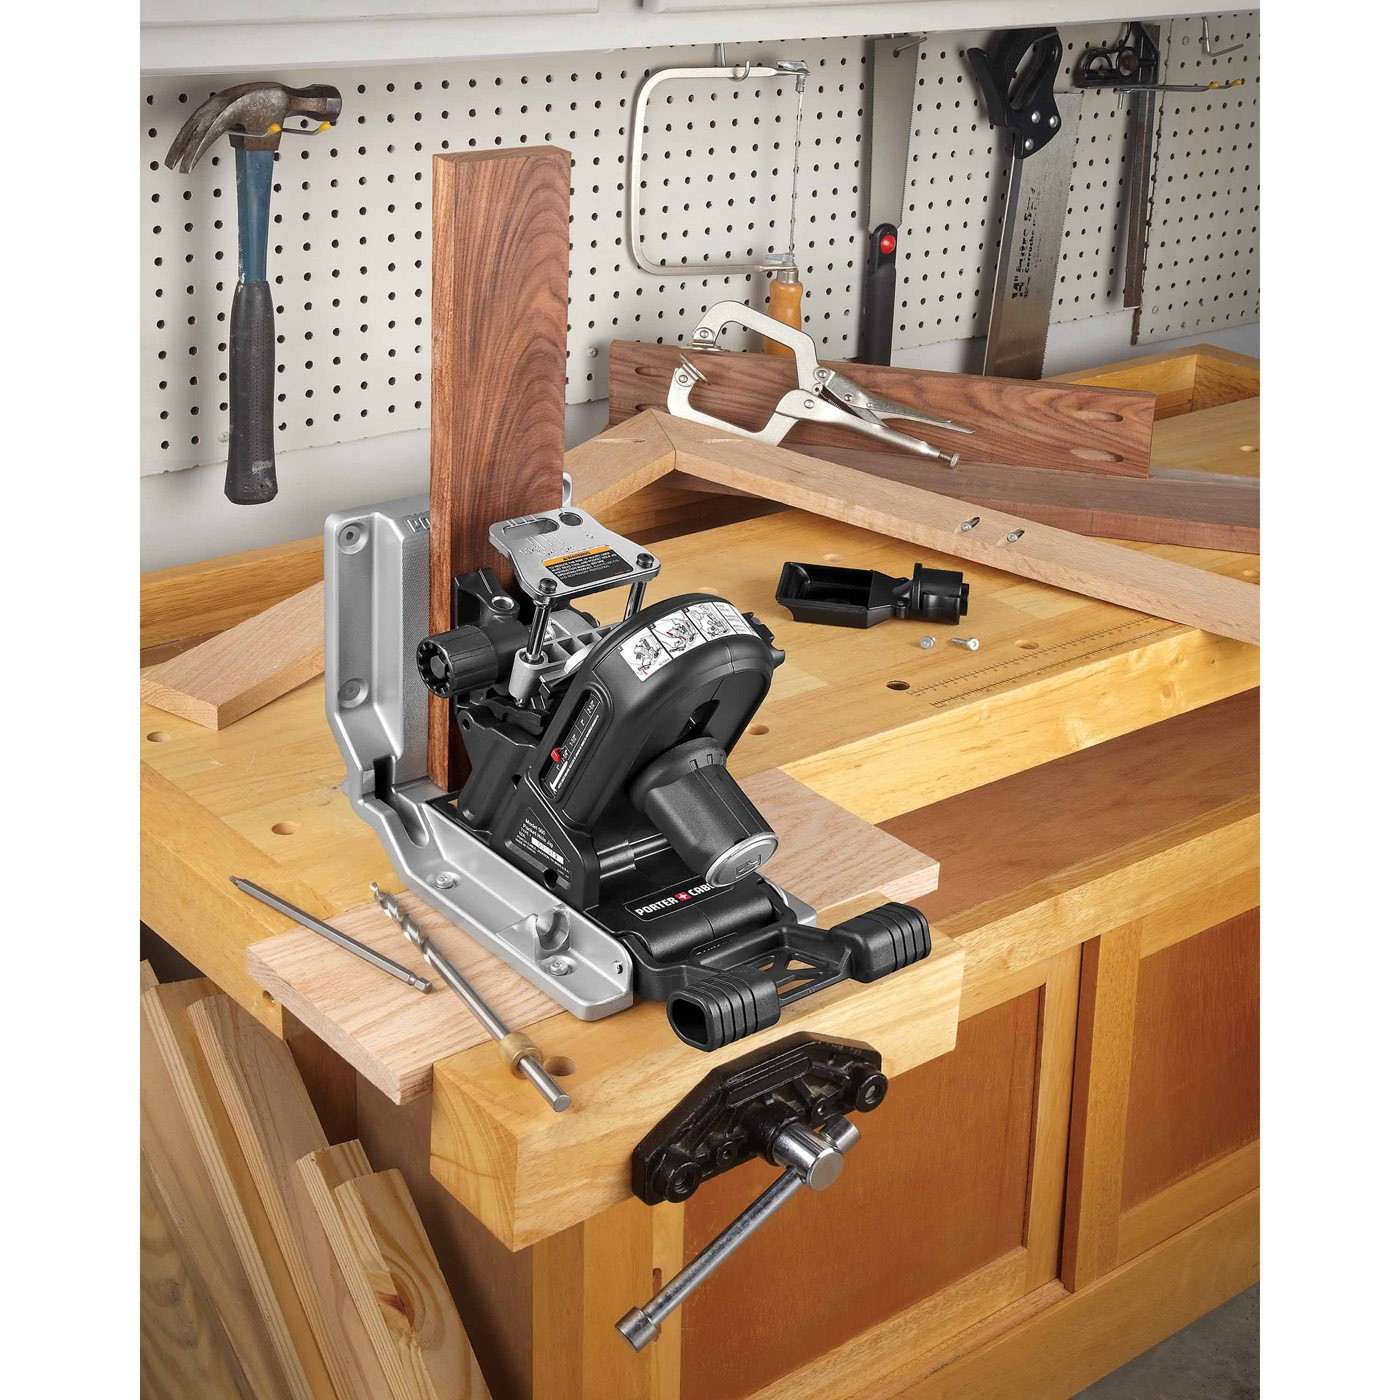 Fashionable Porter Cable Quick Jig Pocket Hole Joinery System Pocket Hole Joinery Pdf Pocket Hole Joinery Home Depot houzz-03 Pocket Hole Joinery